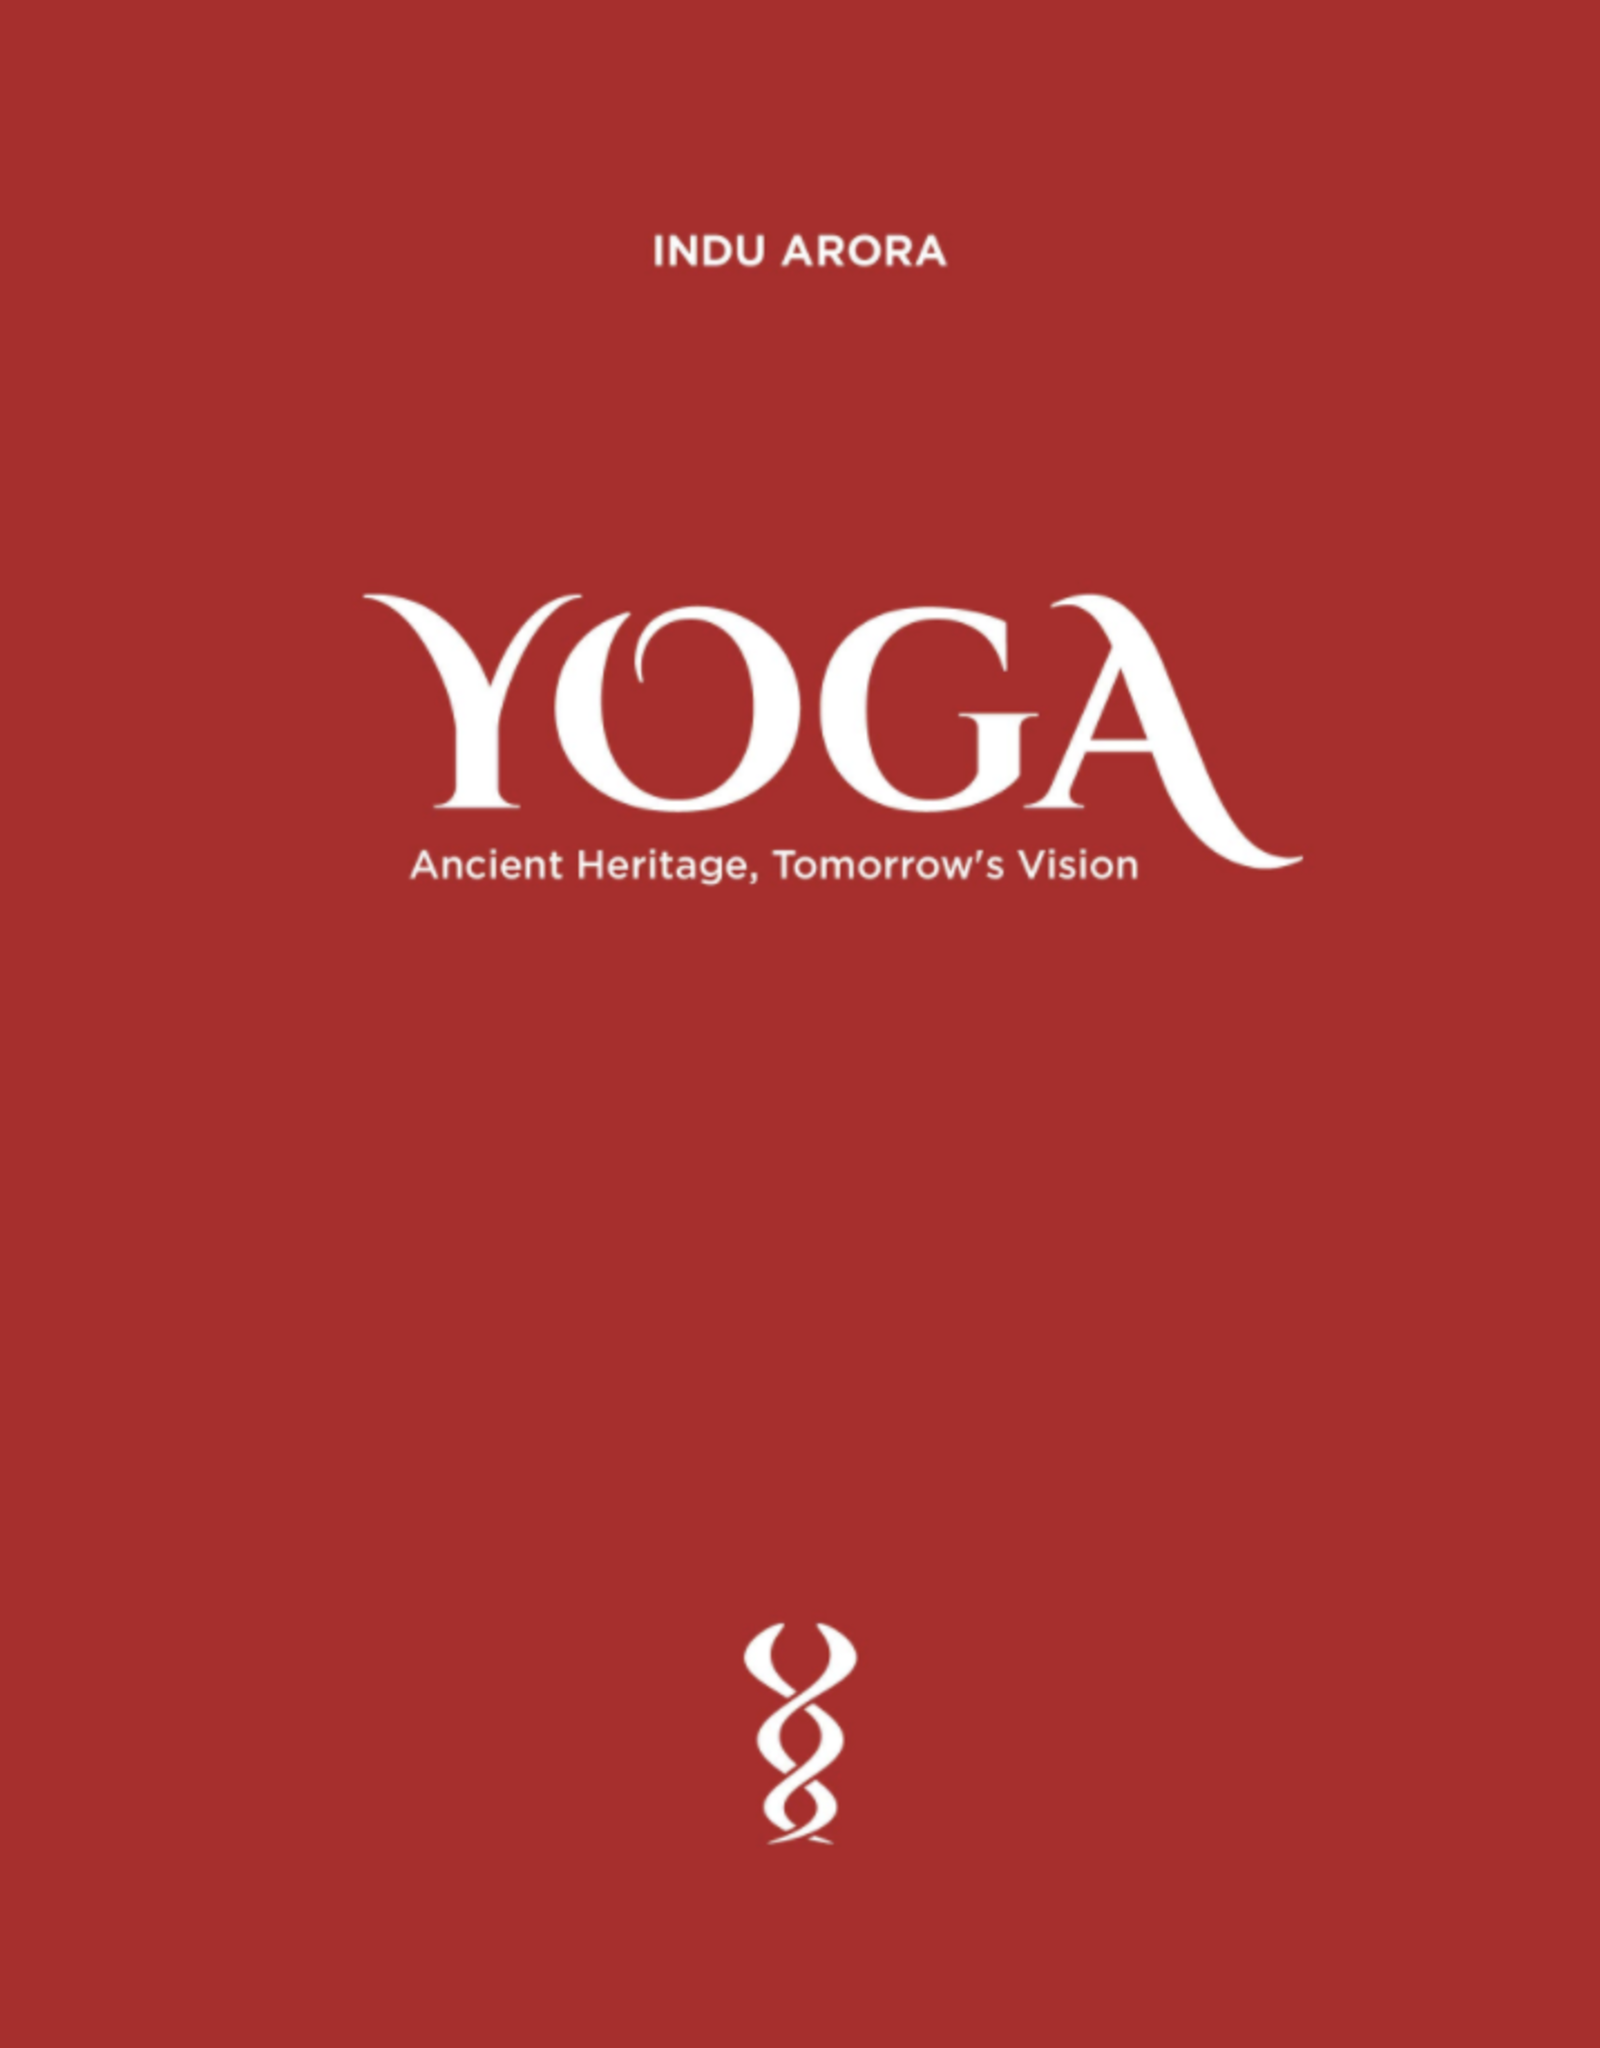 Yoga: Ancient Heritage, Tomorrow's Vision